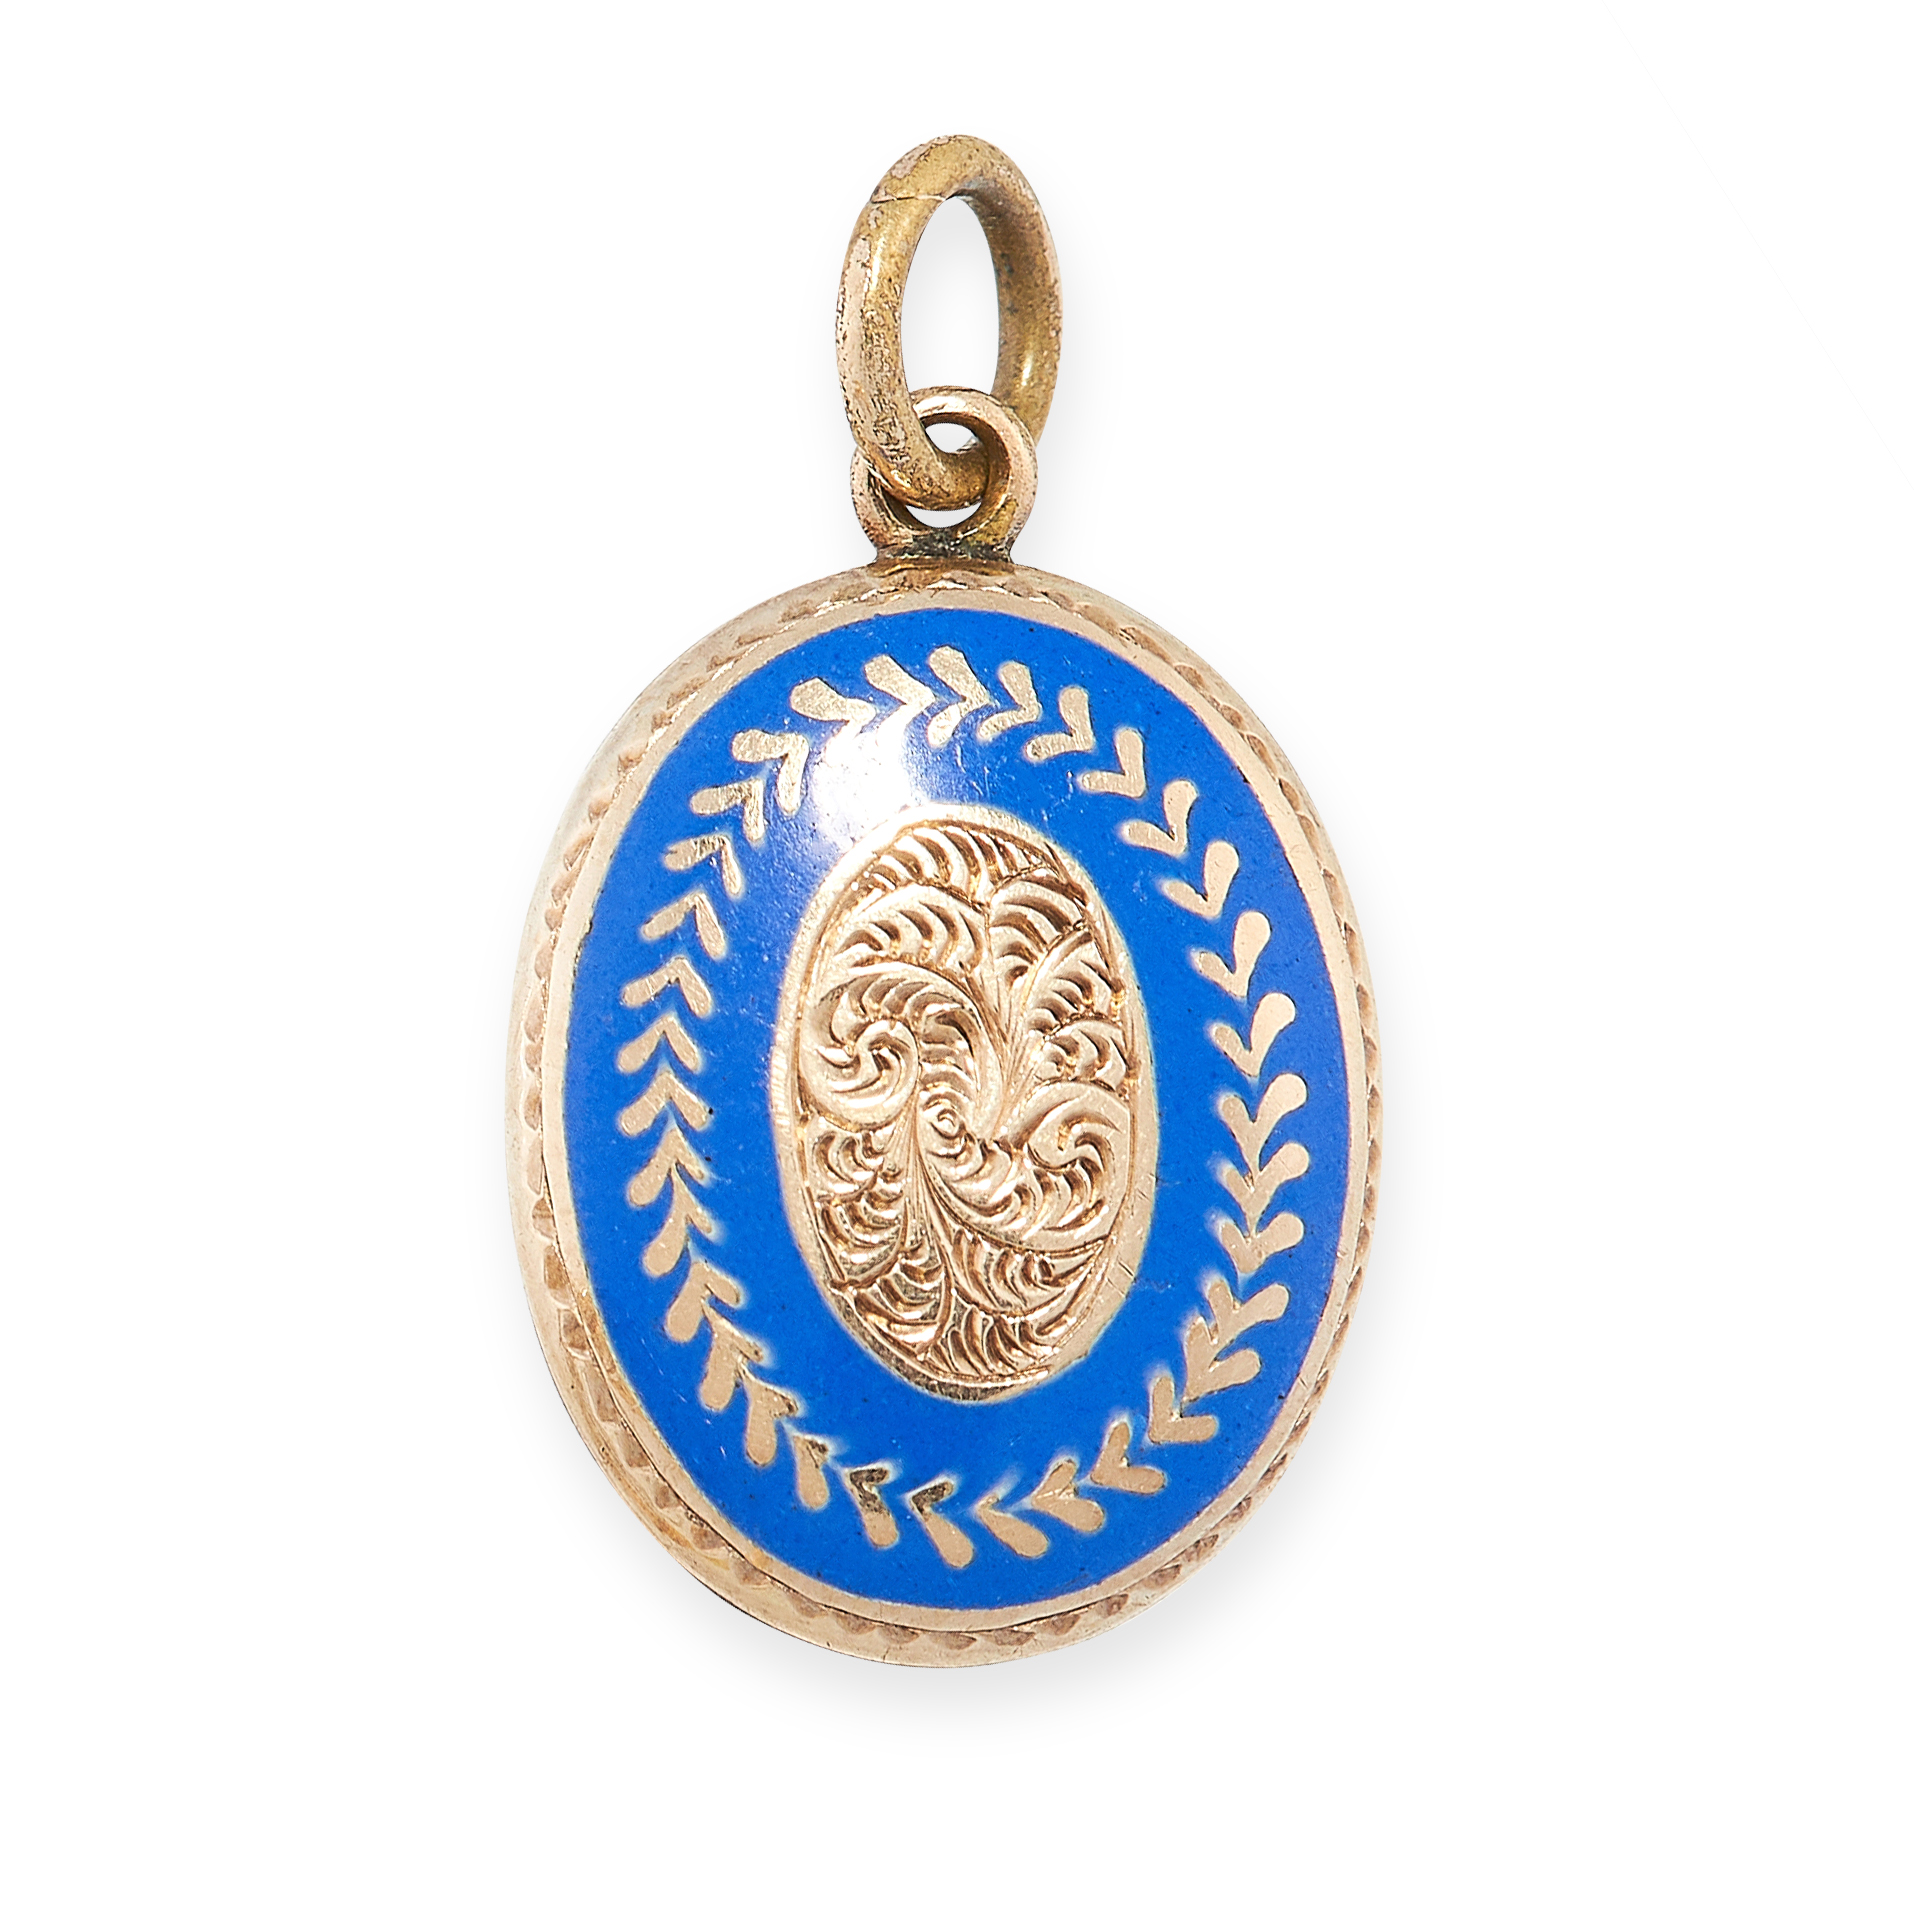 ANTIQUE ENAMEL MOURNING LOCKET PENDANT in yellow gold, of oval form, decorated with blue enamel